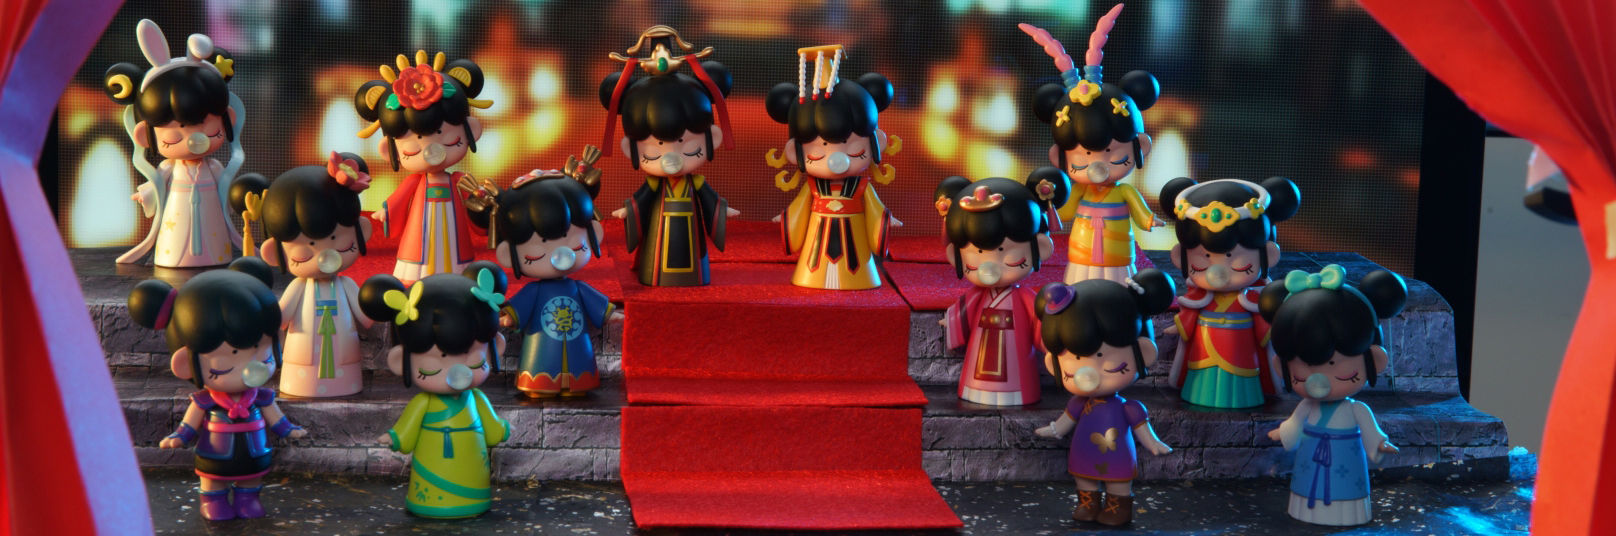 Rolife's New-Released 3D Figure Toys Give You a First Look of Mulan